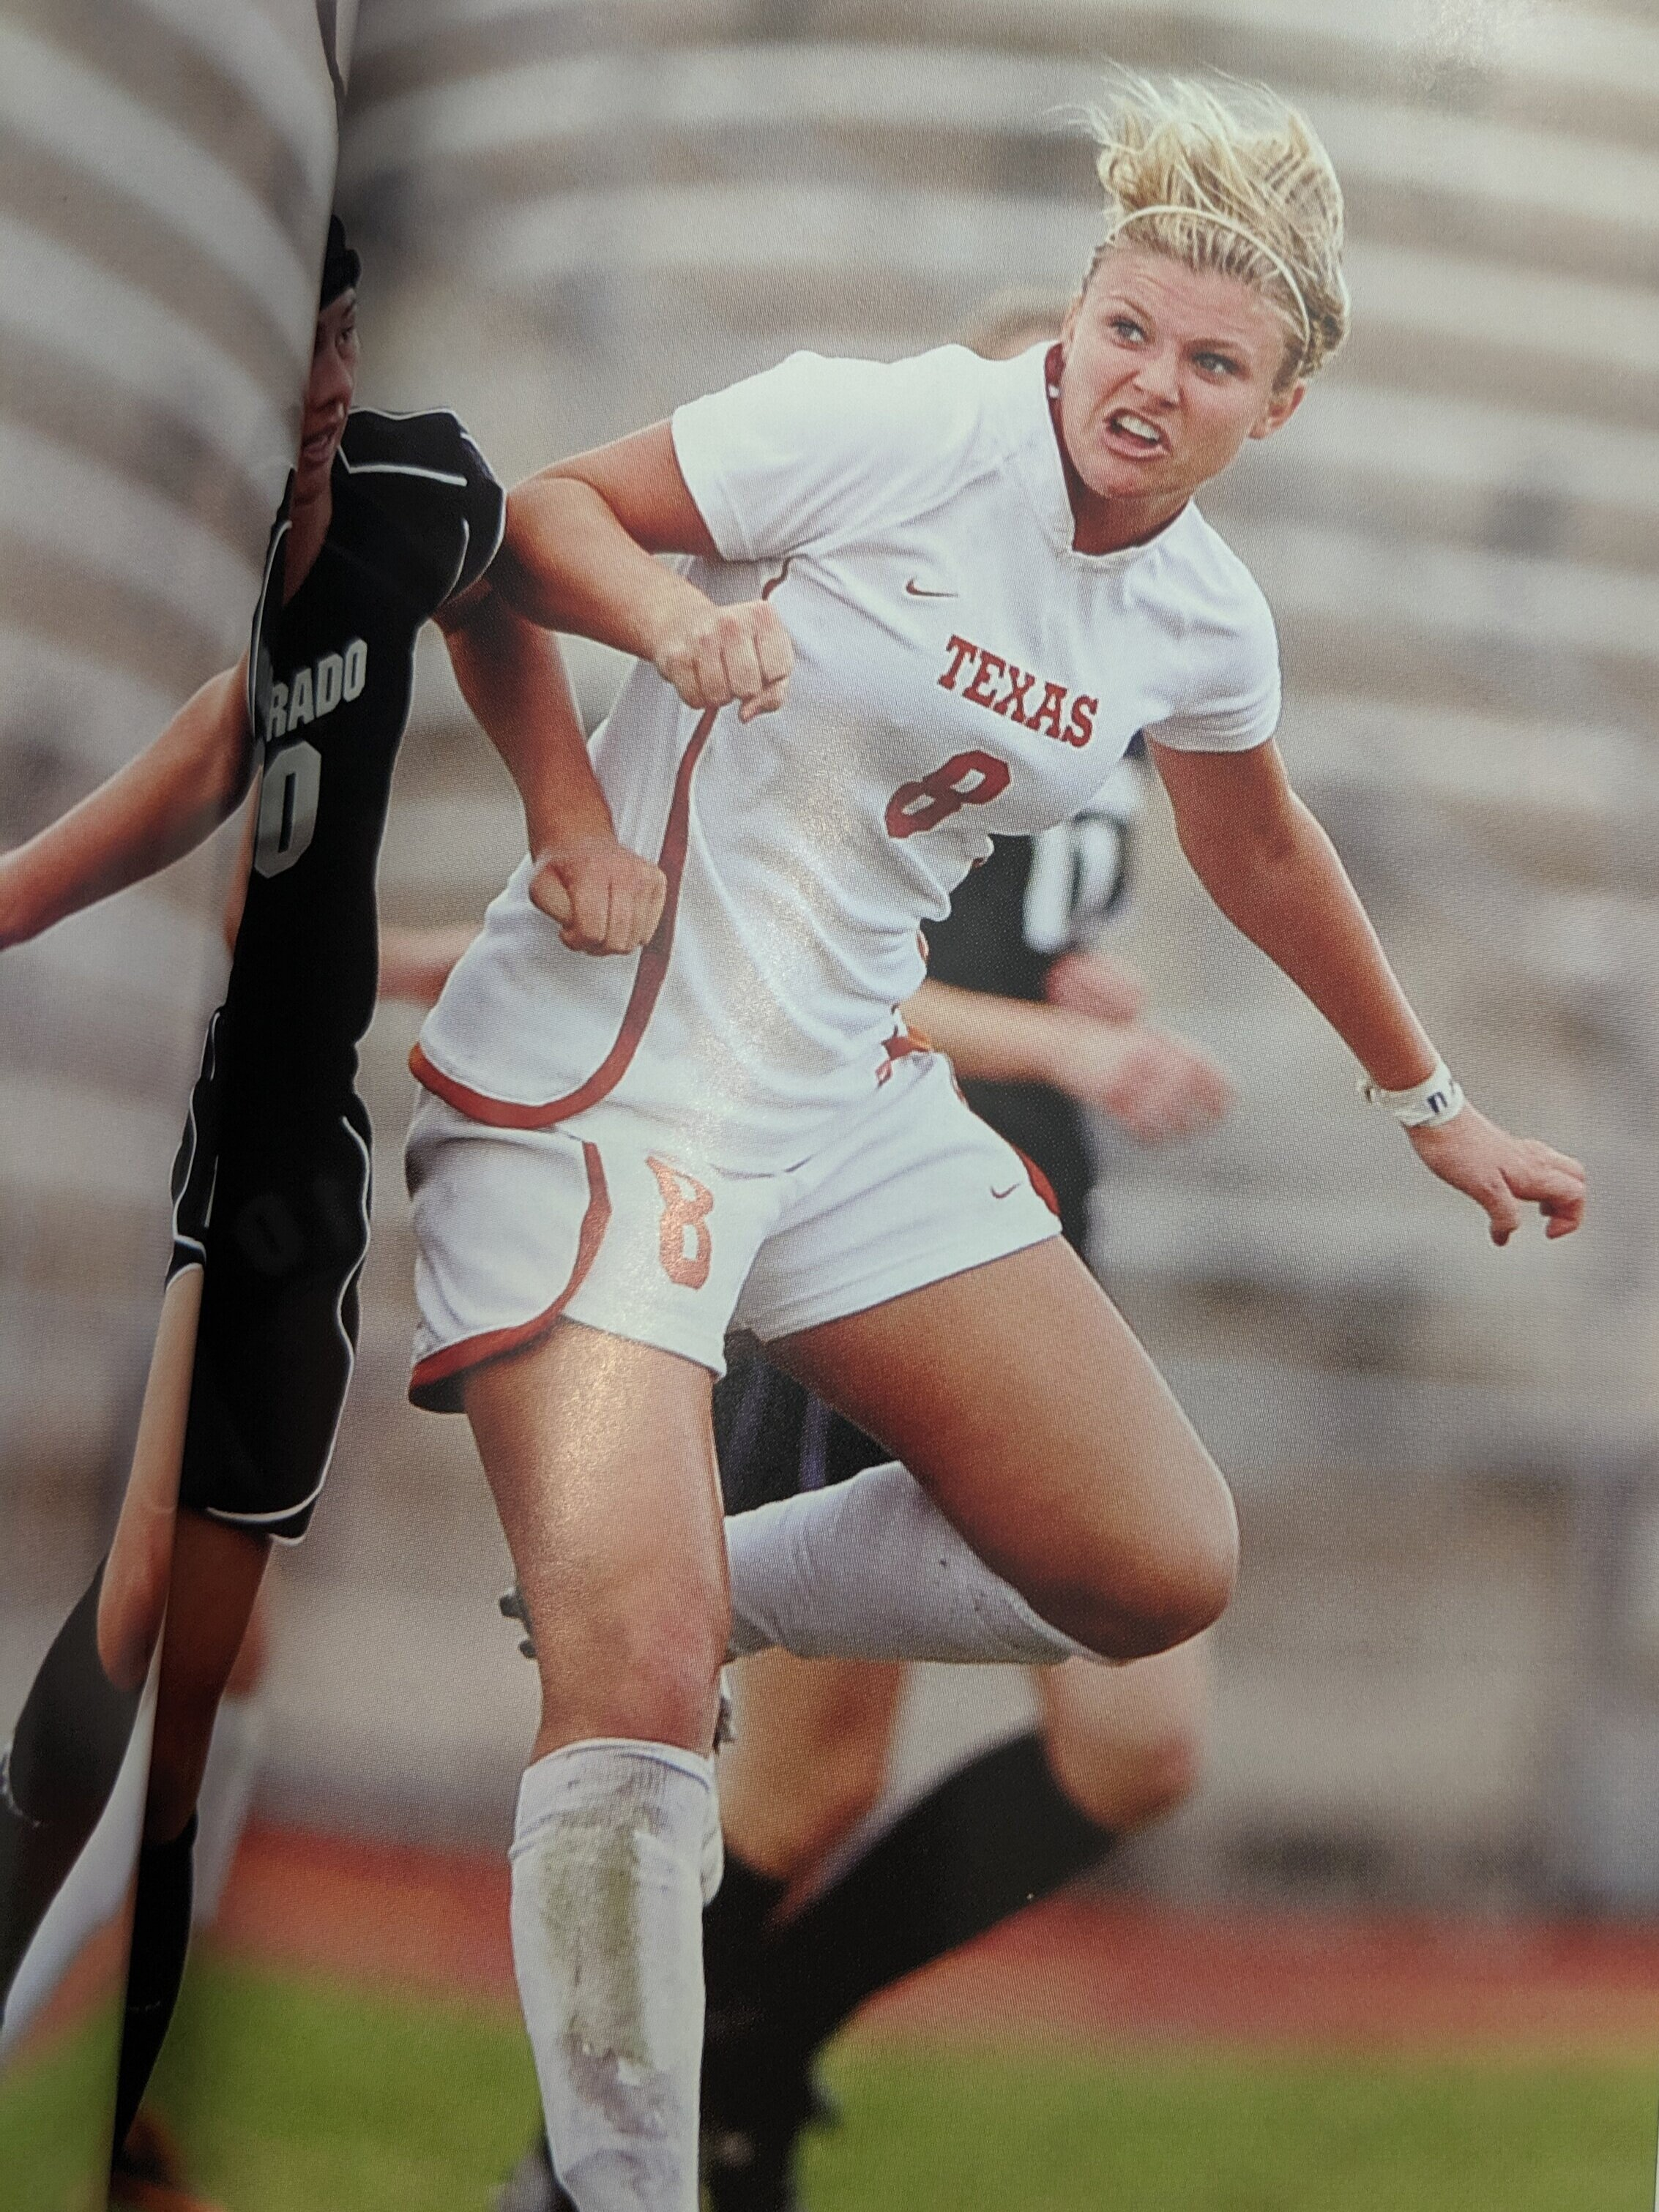 Photo is Kristin Cummiss - Horns lose to the Aggies in the semi-finals of the Big 12 tournament